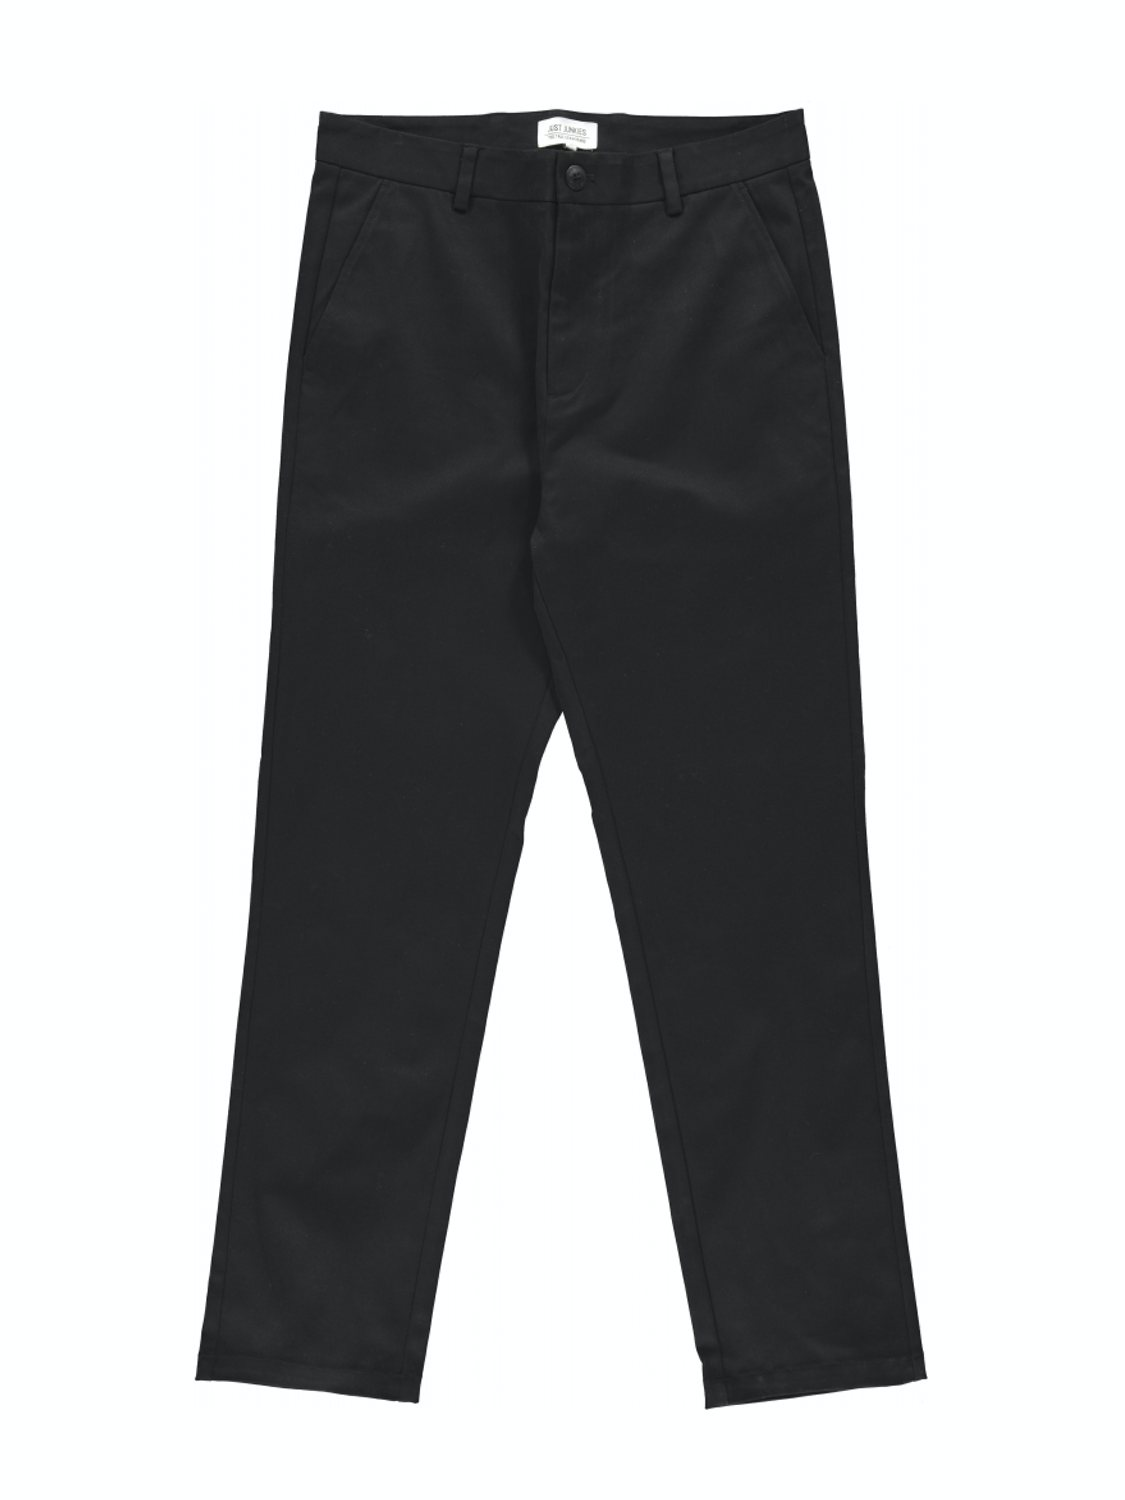 Just junkies - Toya Pants Black | GATE 36 Hobro